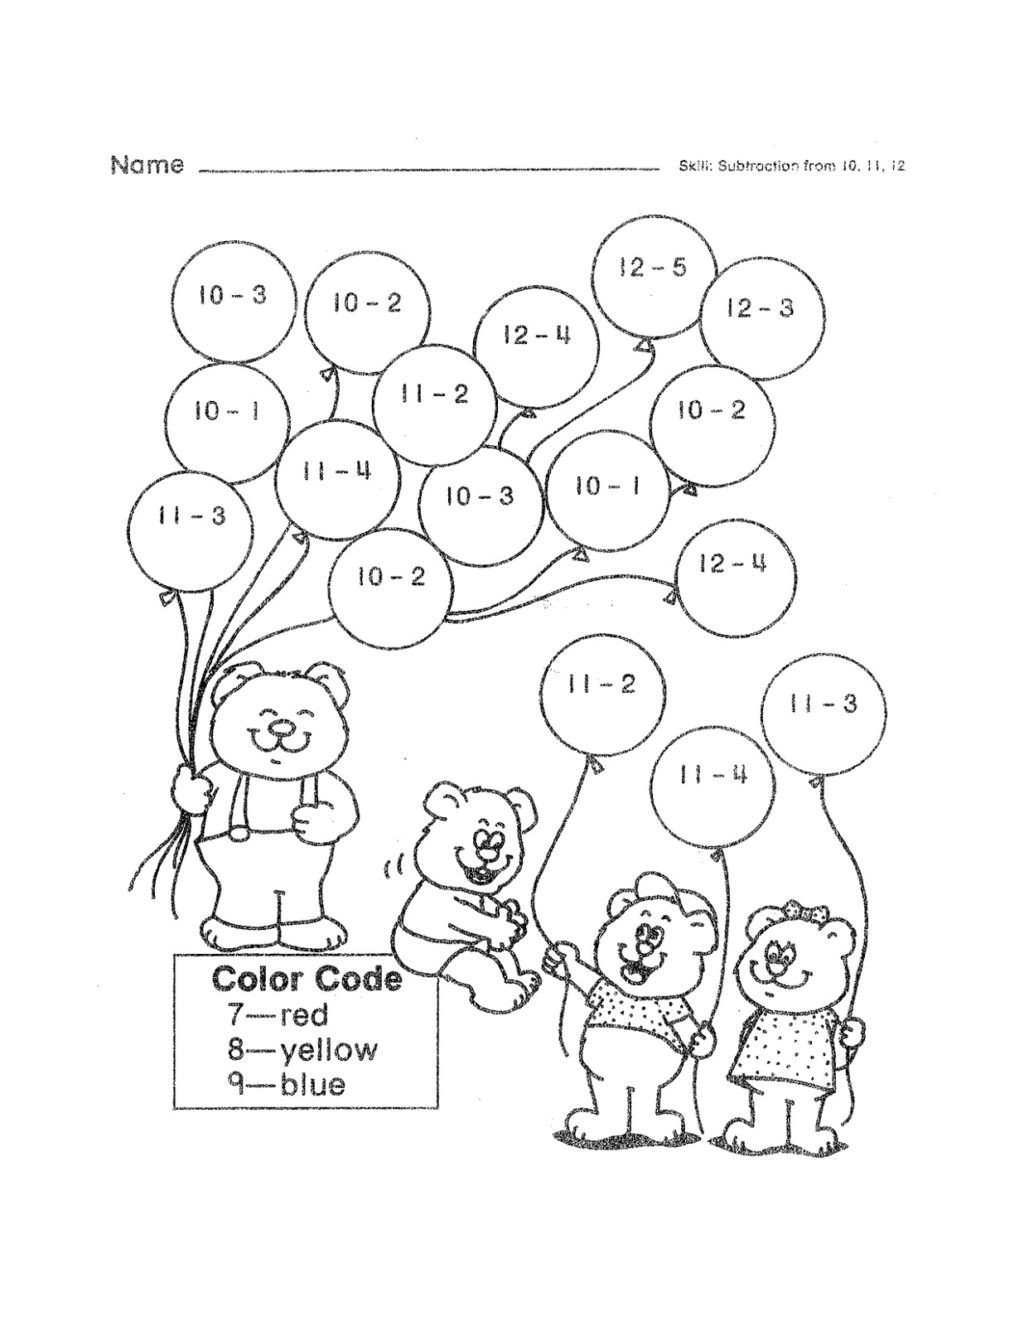 Kindergarten Subtraction Worksheets Free Printable Math Worksheet Preschool Testts Kids Kindergarten Jk